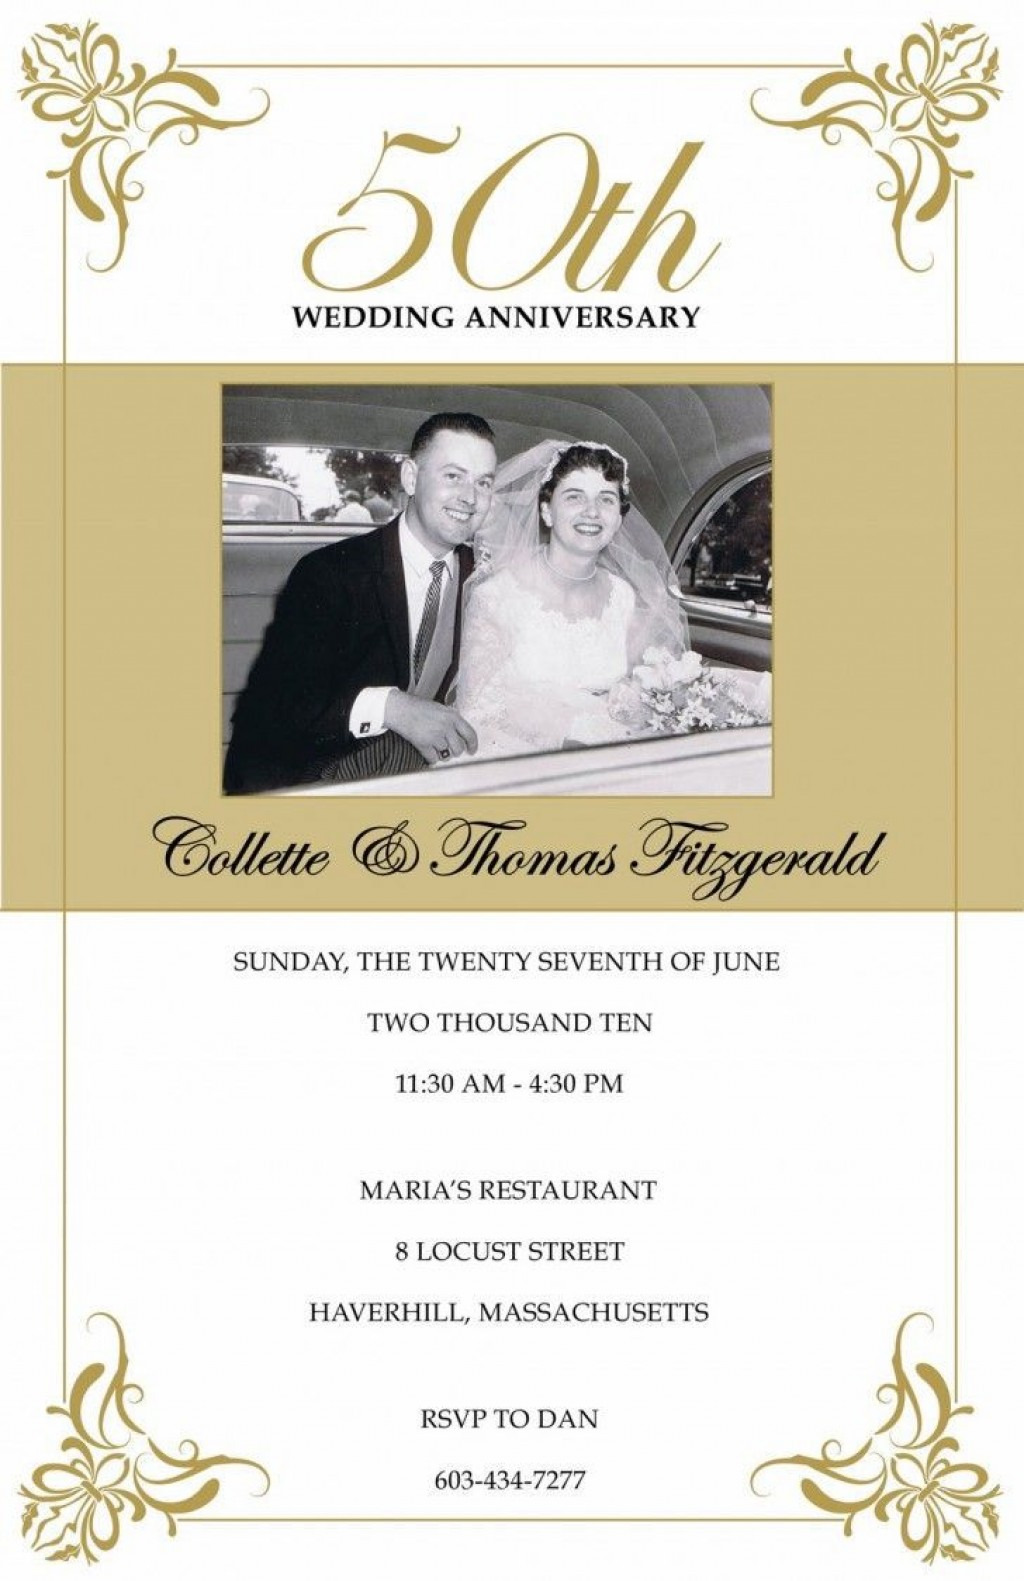 003 Awful 50th Wedding Anniversary Invitation Sample Highest Clarity  Samples Free Party Template Card IdeaLarge